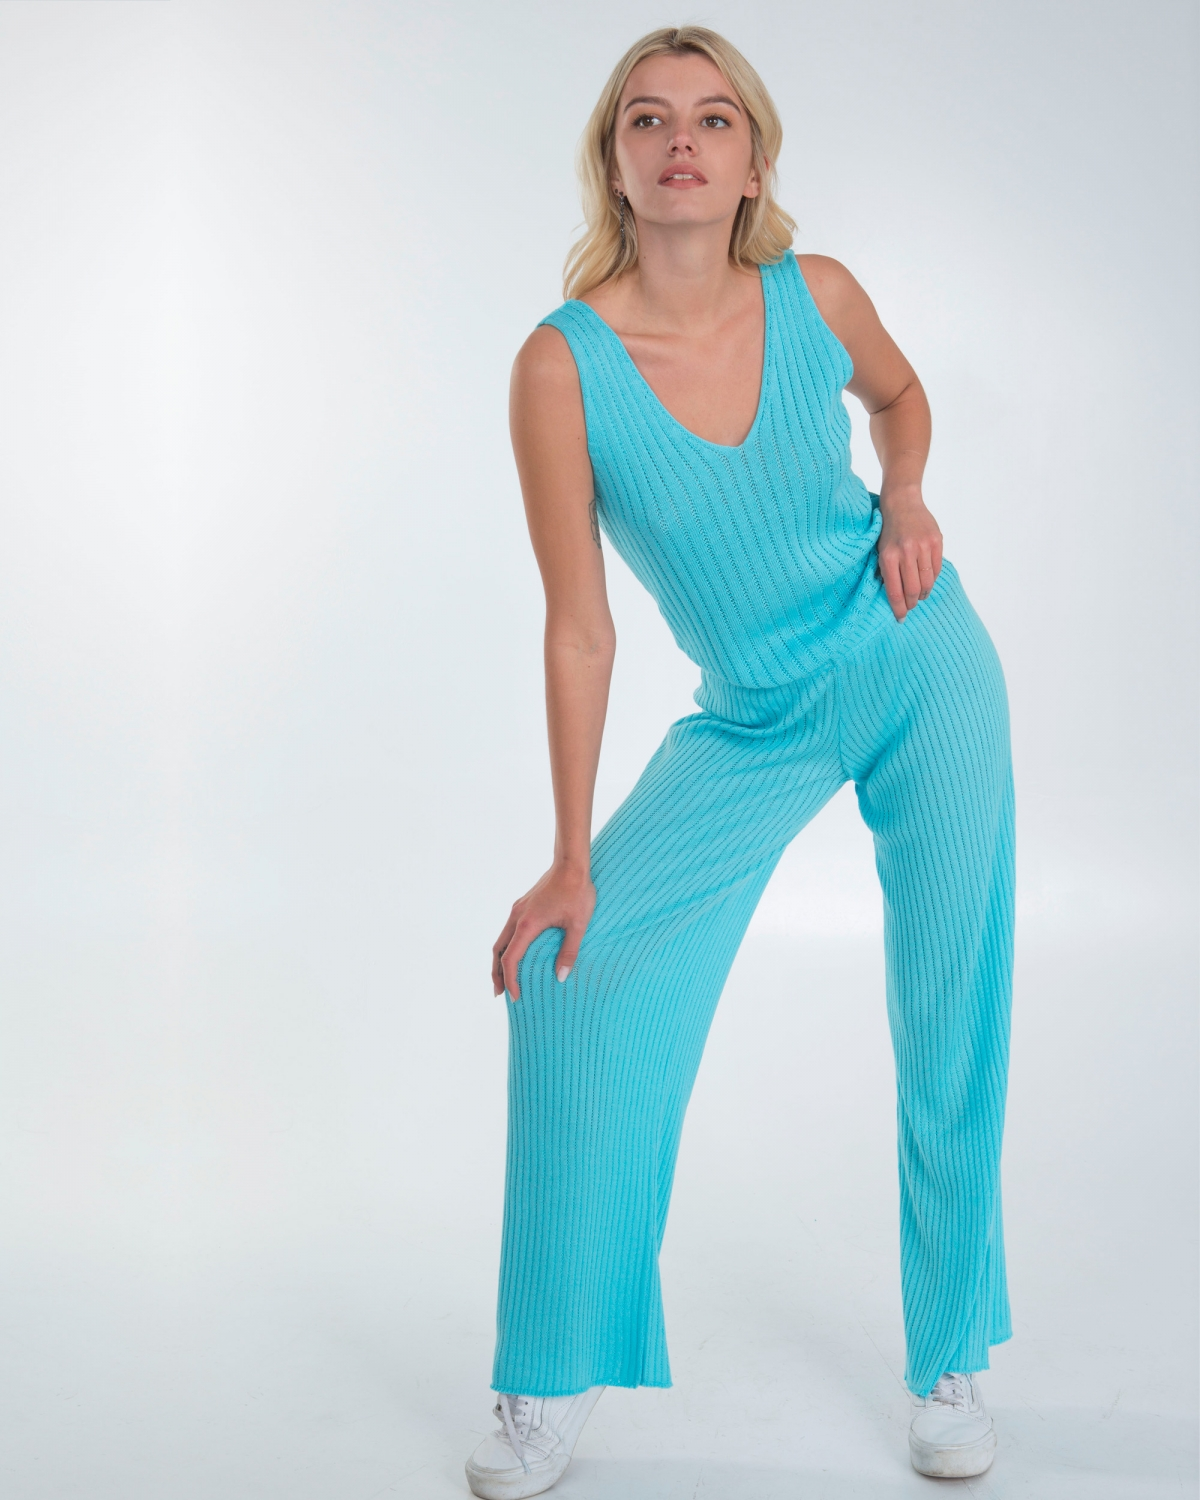 Ribbed Knit Turquoise Pants